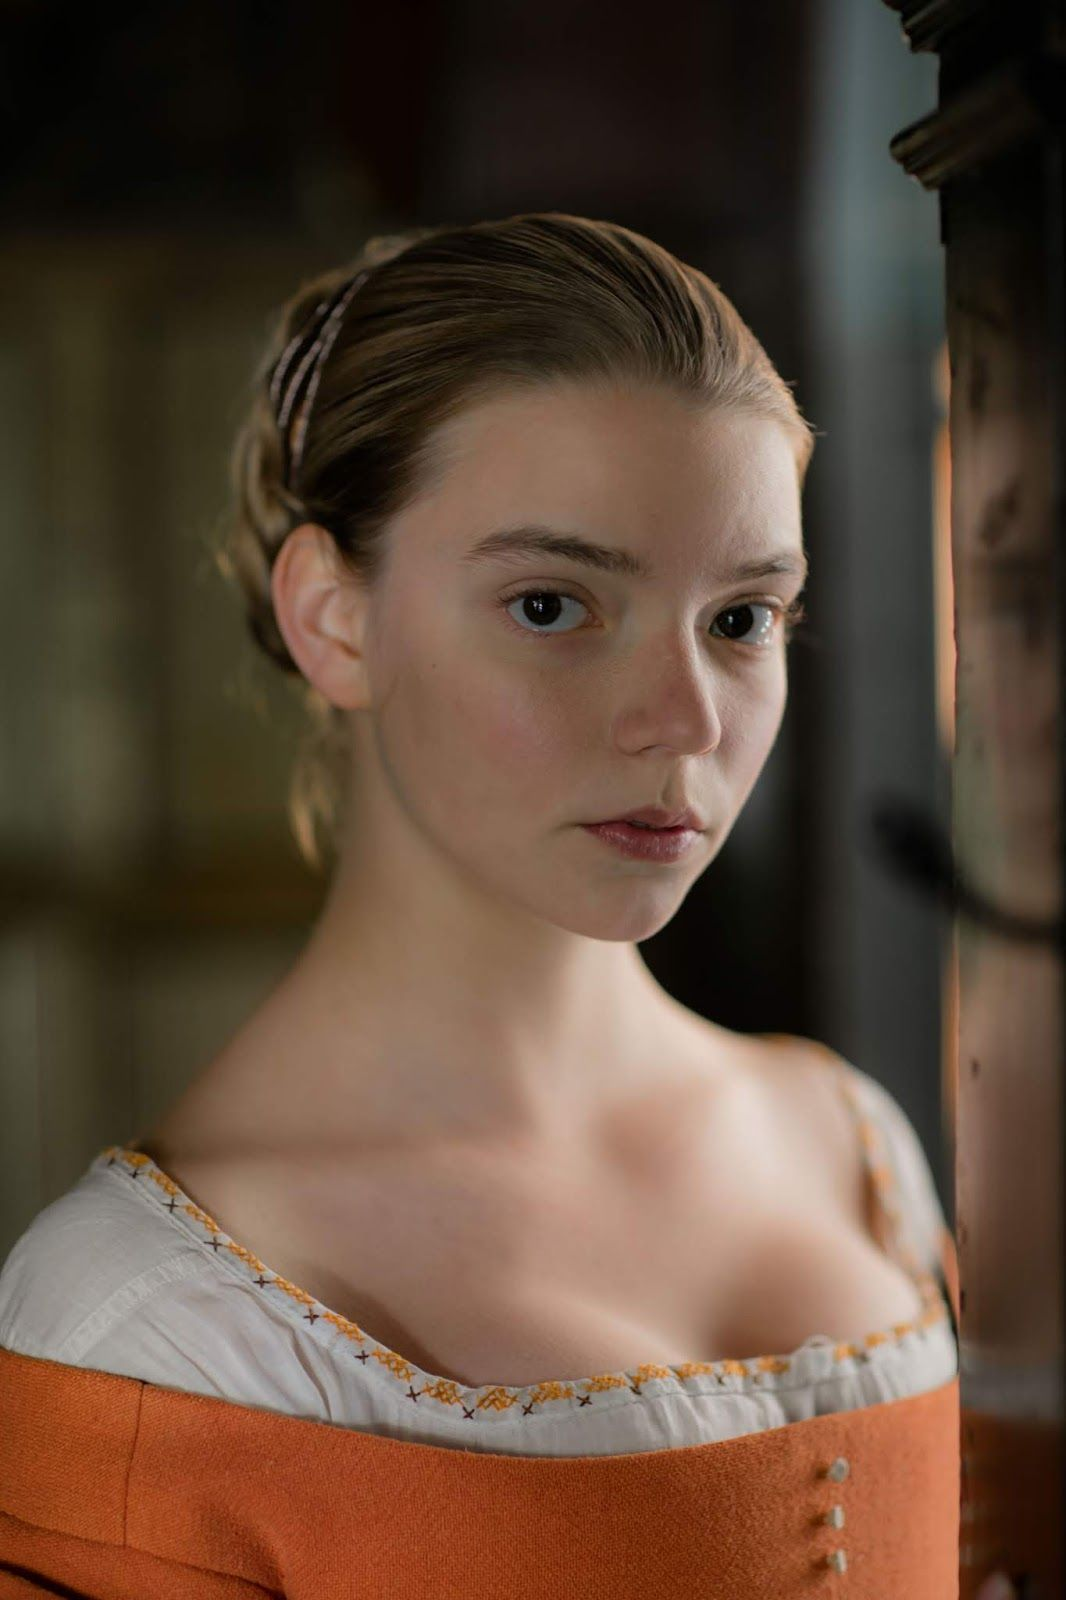 Anya Taylor-Joy - 10+ Free Images - Sexy, Hot, and always Fappable!